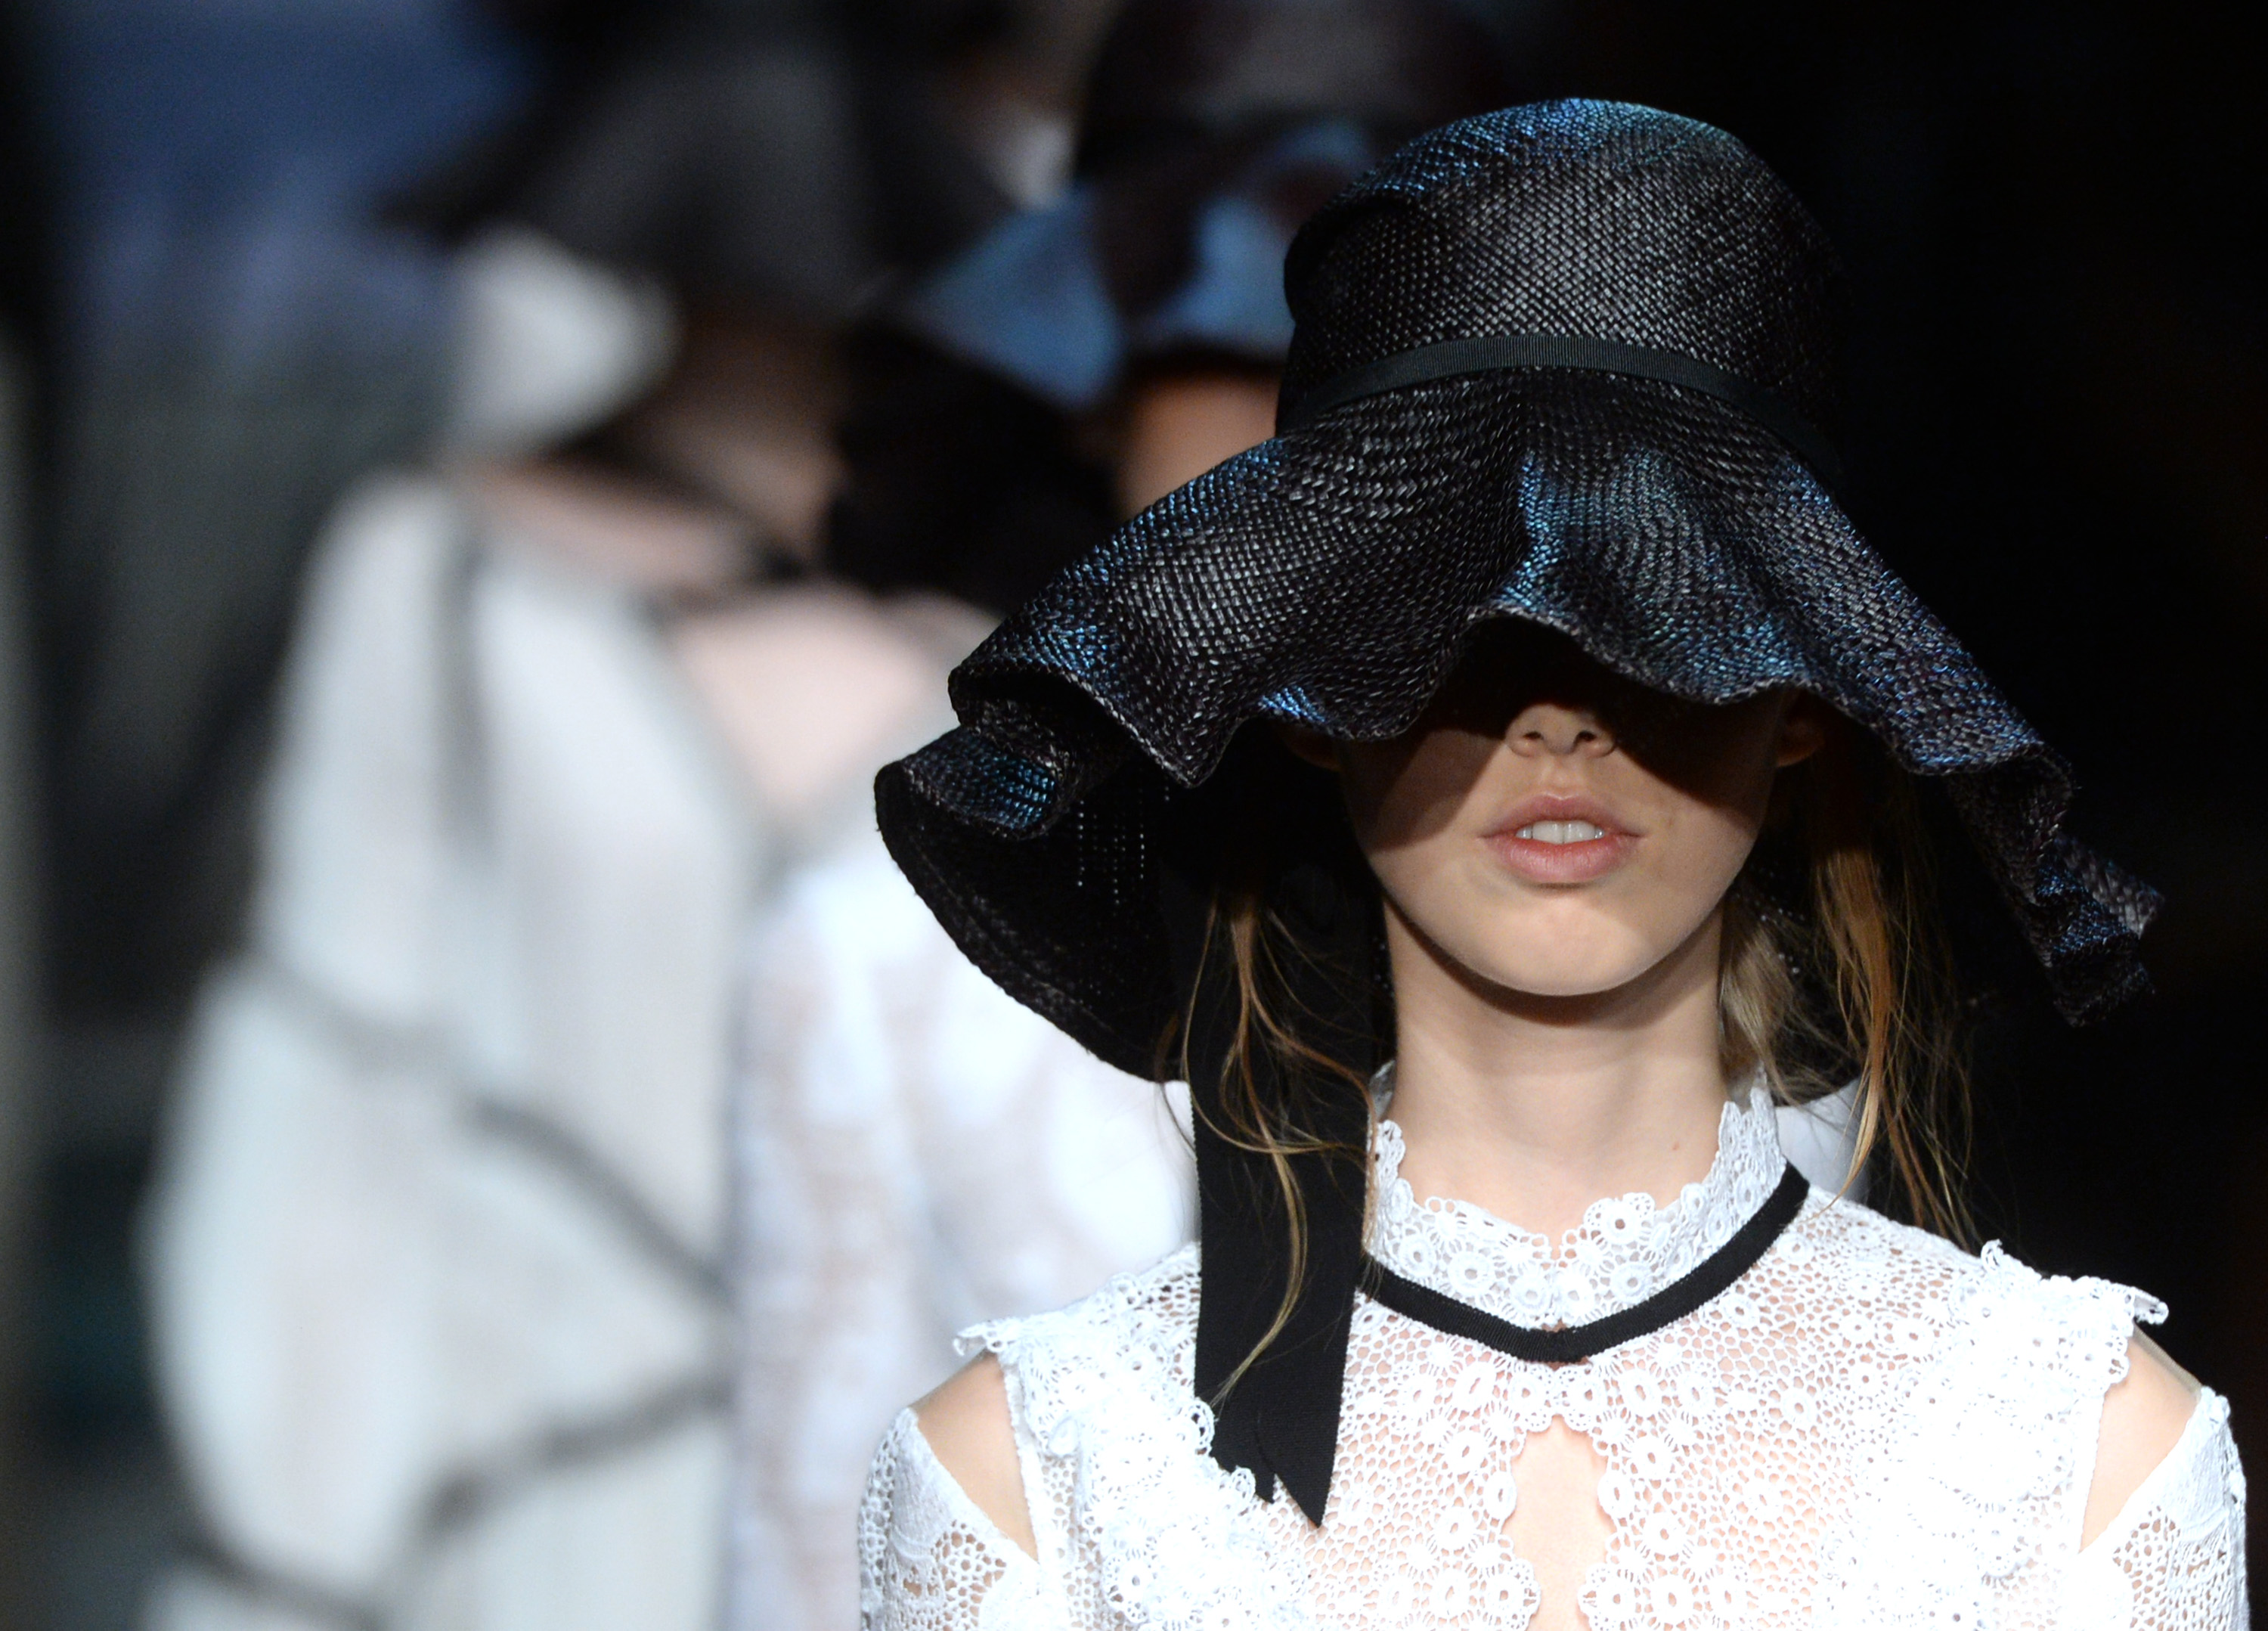 """<p><strong>Hats on</strong></p> <p>Wearing a hat is part and parcel of feeling like a princess for a day at the races. </p> <p>While it's tempting to settle for a fascinator or hipster headband the truly courageous will get turned on by tradition and express themselves with fully fledged headwear.</p> <p>This season in New York, London, Milan and Paris hats continued to add an element of intrigue on the runway.</p> <p>At <a href=""""http://honey.nine.com.au/2016/09/29/13/24/maison-margiela-spring-summer-paris-fashion-week"""" target=""""_blank"""">Maison Margiela</a> the master with a mouth John Galliano delivered futuristic egg caps while Giorgio Armani provided super-sized straw numbers perfect for hiding bleary eyes.</p> <p><a href=""""http://honey.nine.com.au/2016/10/05/08/07/chanel-runway-hair-tie-2017"""" target=""""_blank"""">Chanel</a> took it to the streets with baseball caps but if you're going to take this route select one in an upmarket fabric to avoid looking as though you're off to the football.</p> <p>Our pick at Honey was from Dolce & Gabbana where elegant excess delivered show stoppers worth taking a gamble on.</p> <p>Remember when picking a hat that the same rules apply as with your shoes - you have to keep it on until the end of the day. Hat hair on the train home is a big no.</p>"""